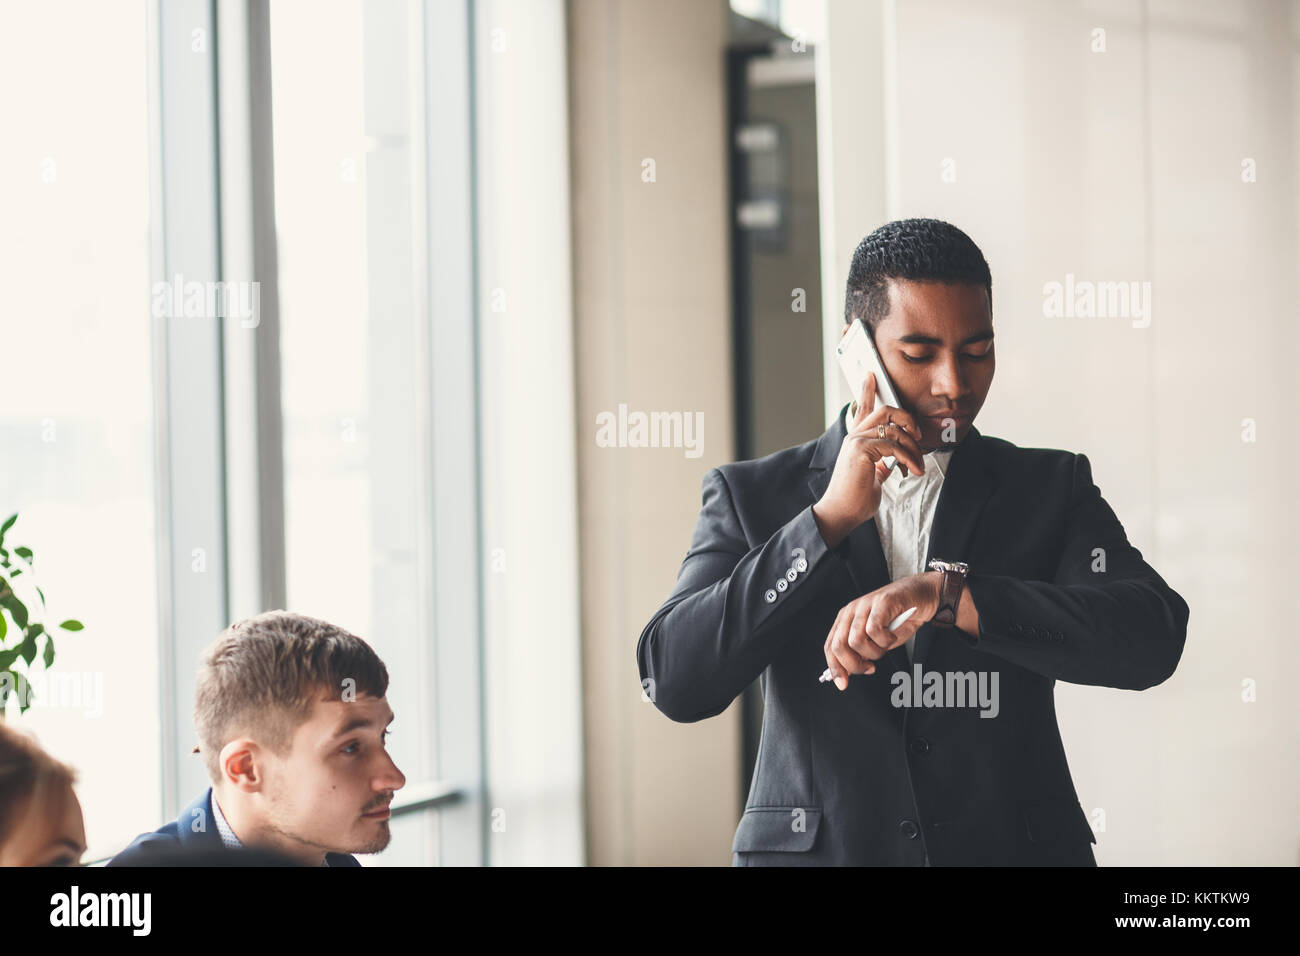 Handsome african american businessman using smart phone emailing Photo Stock